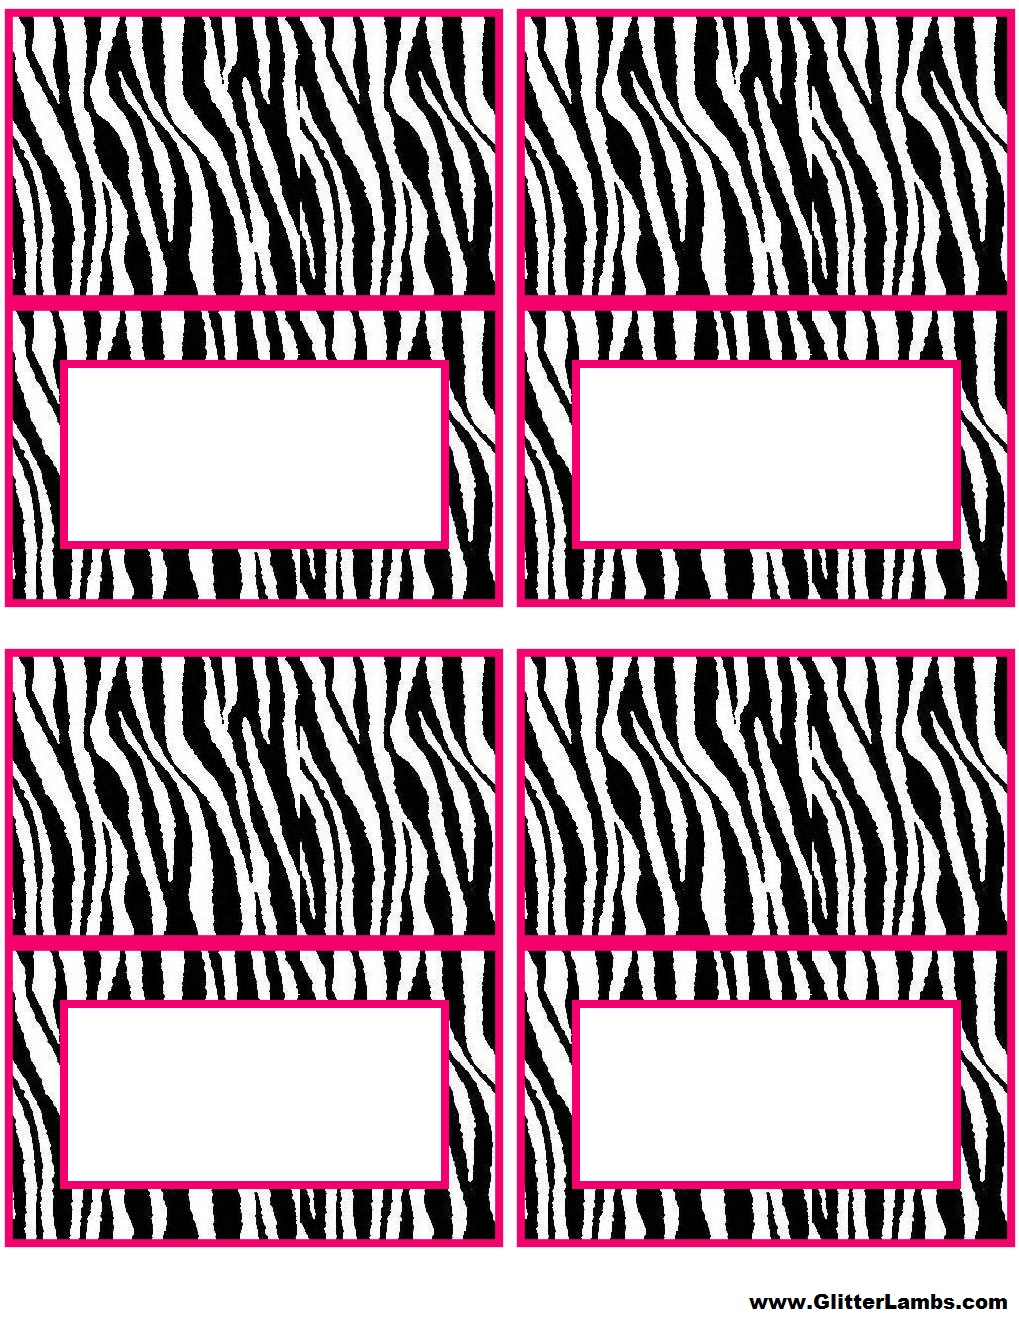 Glitter Lambs: Pink Zebra Food Label Cards And Free Printable Cupcake Topper Templates For A DIY ...